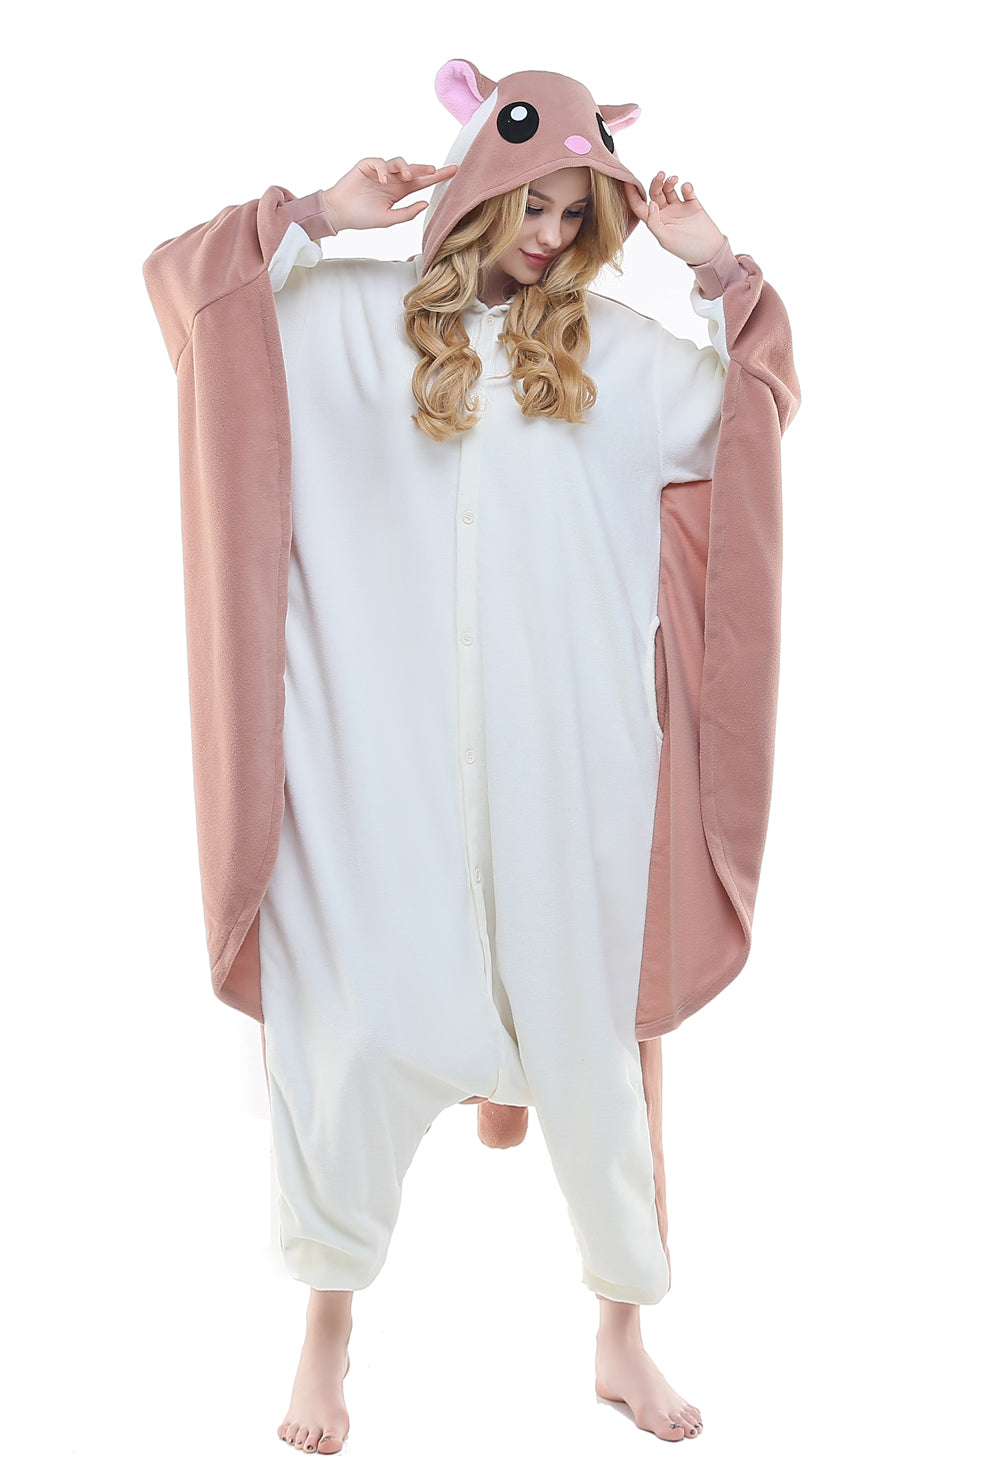 NEWCOSPLAY Unisex Adult Kid Flying Squirrel Pajamas Plush One Piece Costume